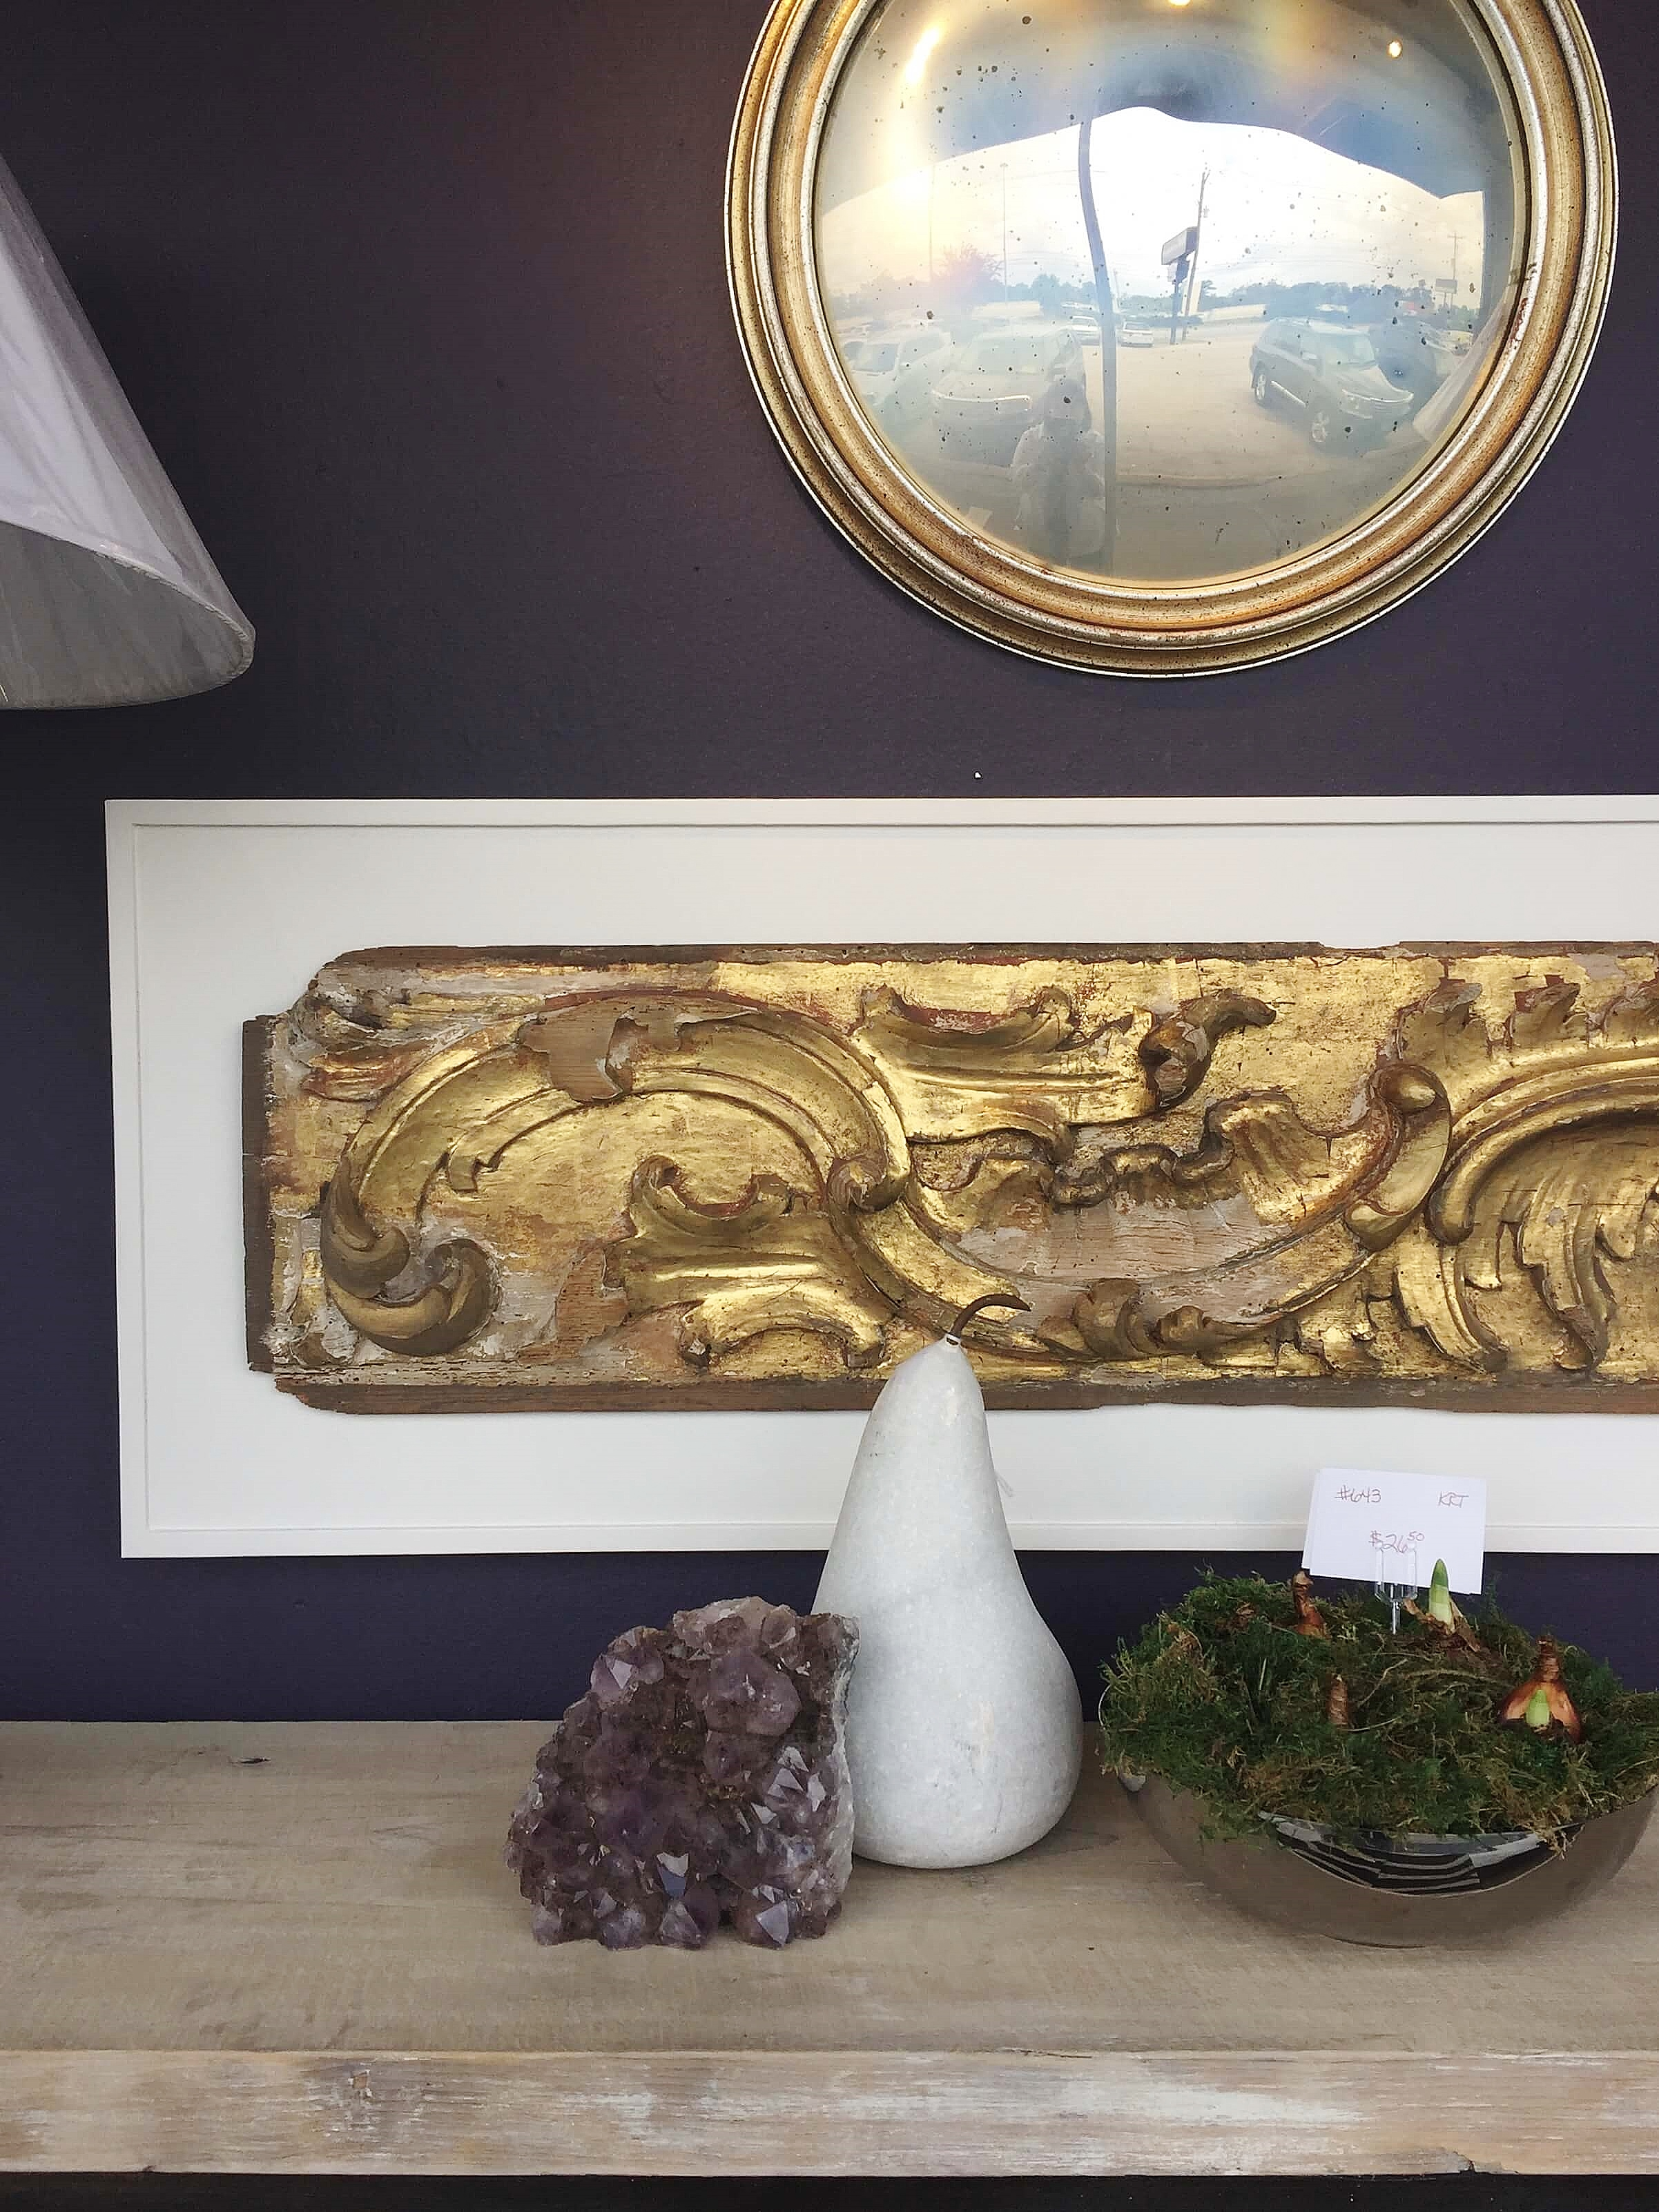 Shadowbox framed gilded wood carving as wall decor #walldecor #wallart #framing #collections